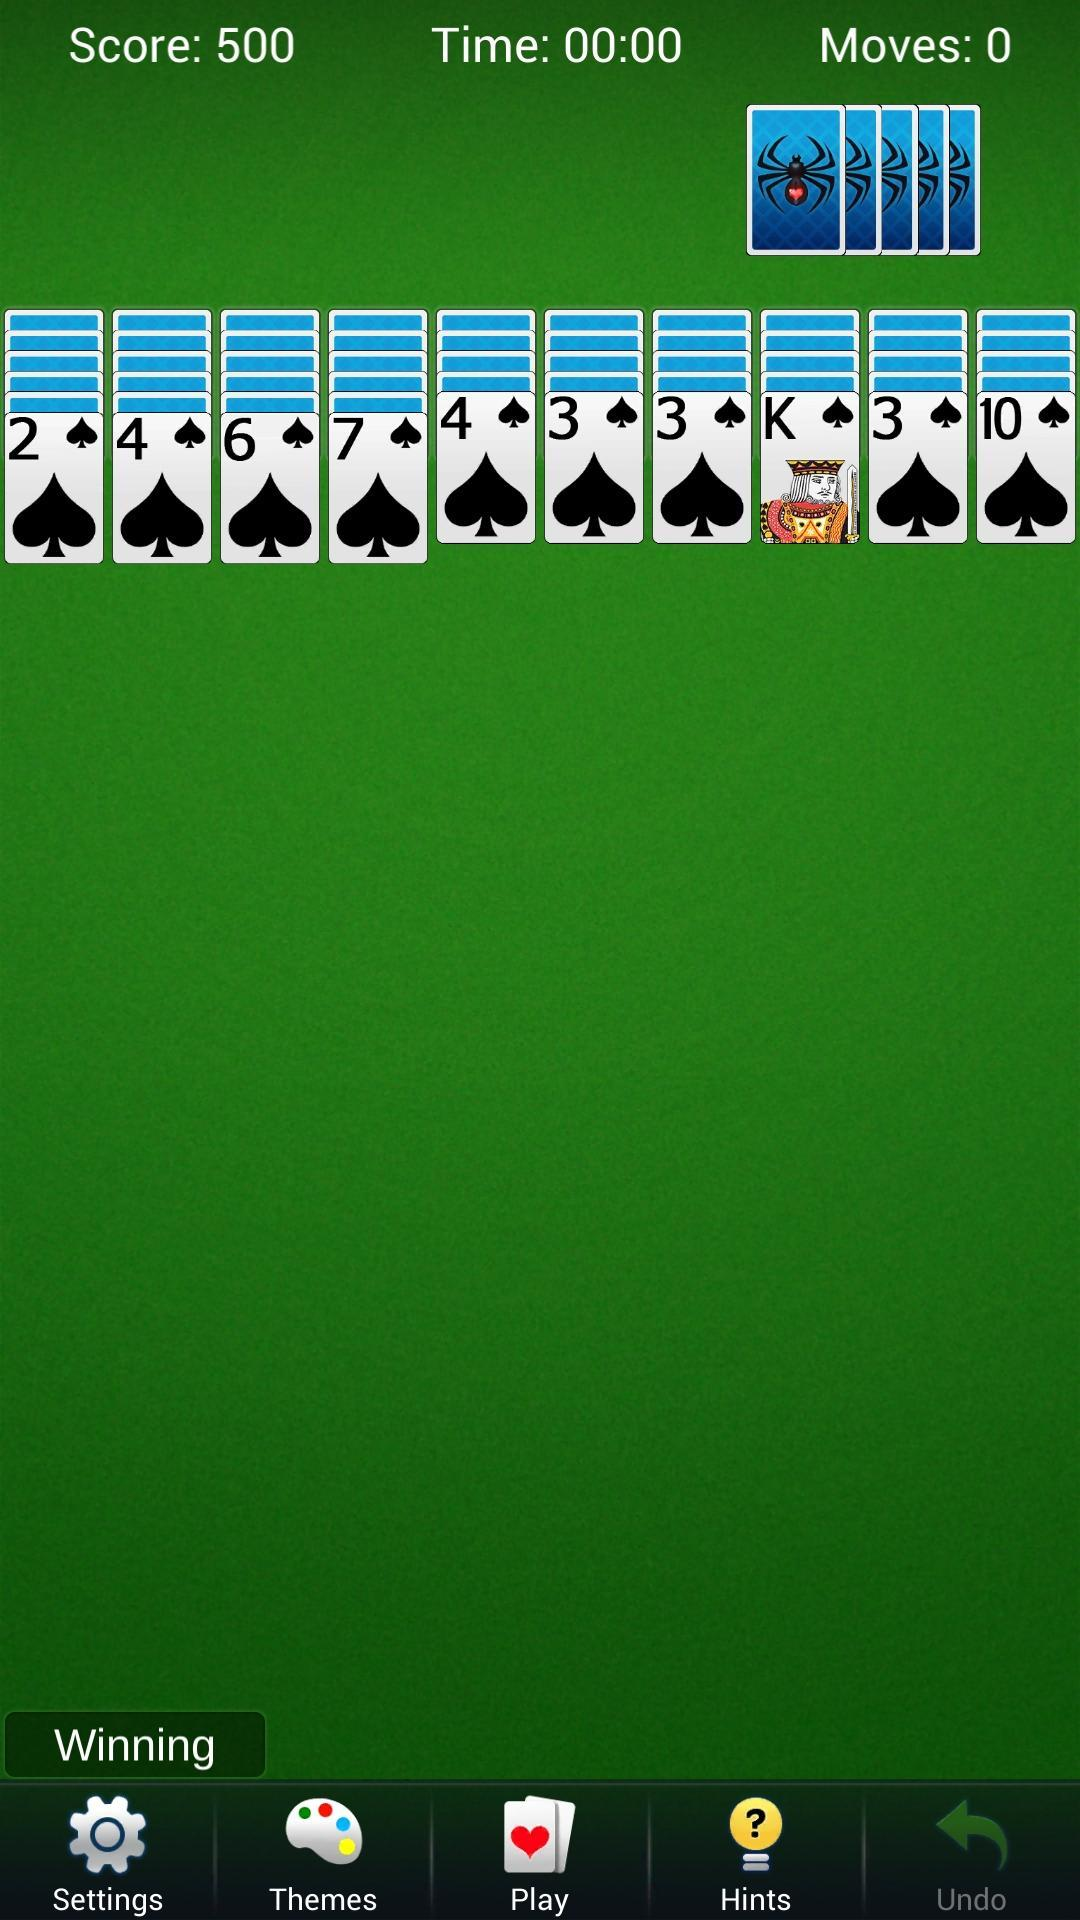 Spider Solitaire - Best Classic Card Games 1.6 Screenshot 9